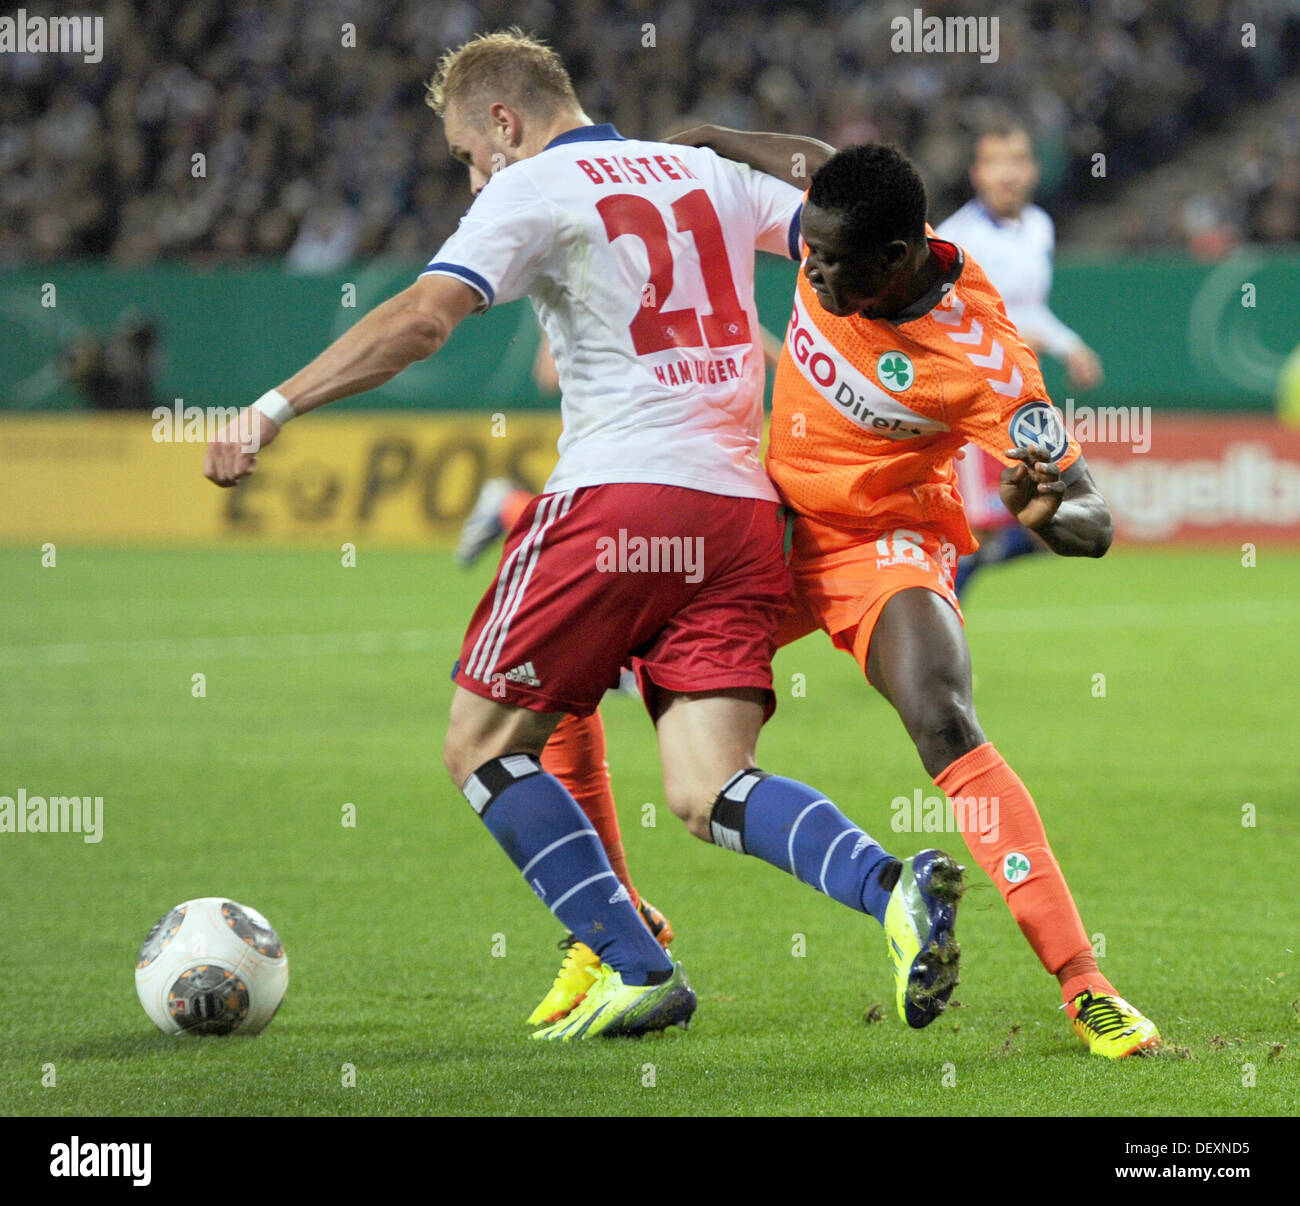 Hamburg, Germany. 24th Sep, 2013. Hamburg's Maximilian Beister (L) vies for the ball with Fuerth's Abdul Rahman Baba during the DFB Cup second round match between Hamburger SV and SpVgg Greuther Fuerth at Imtech Arena in Hamburg, Germany, 24 September 2013. Photo: ANGELIKA WARMUTH/dpa/Alamy Live News - Stock Image